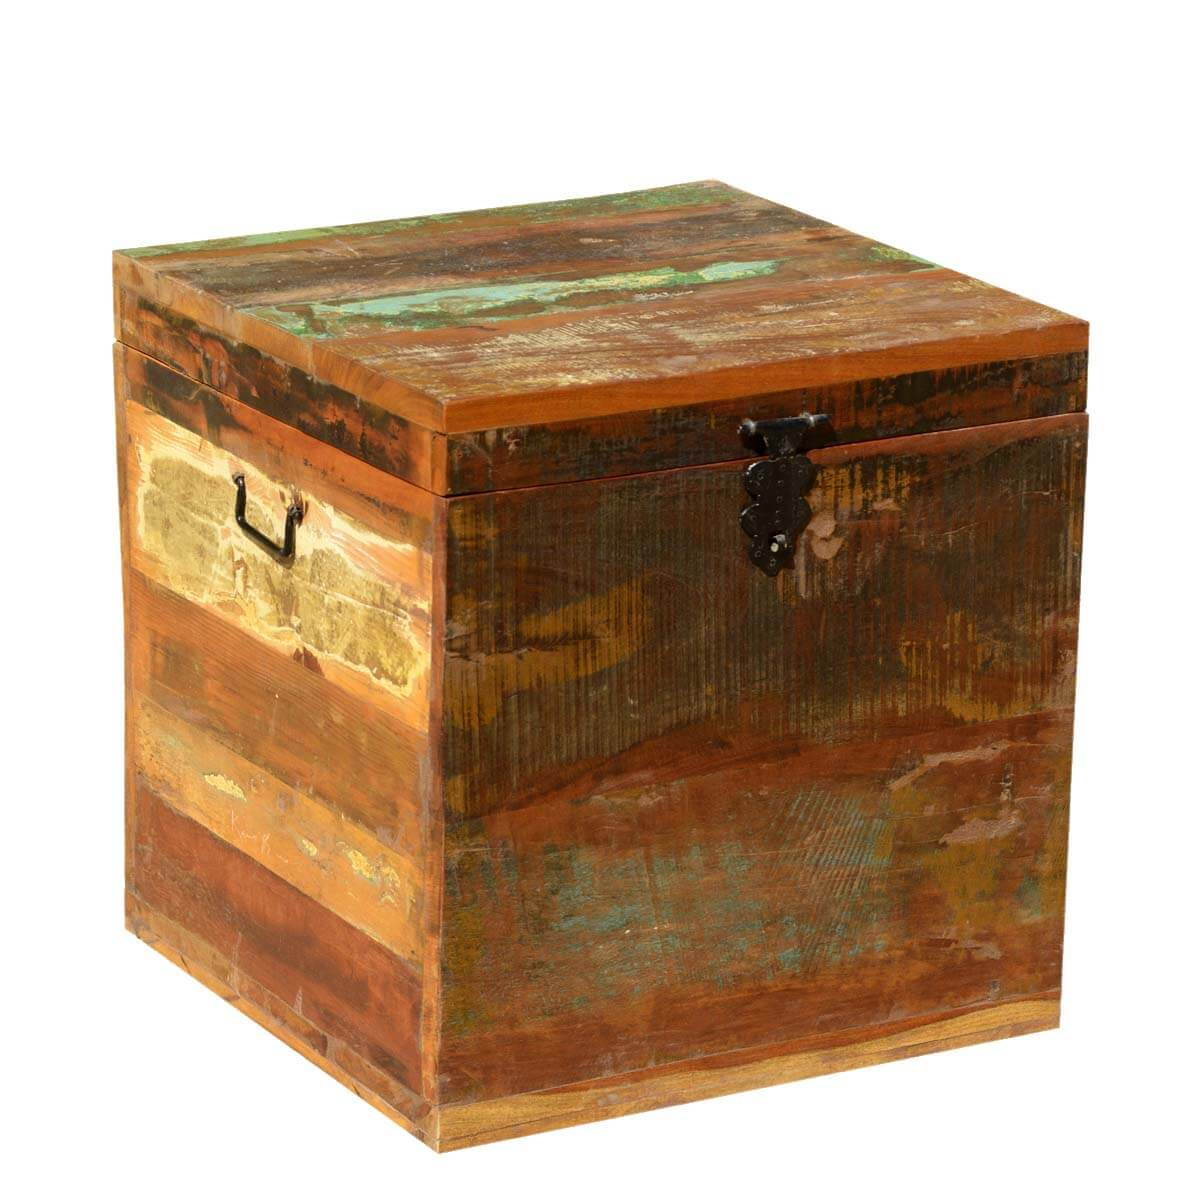 grinnell reclaimed wood rustic end table storage cube chest. Black Bedroom Furniture Sets. Home Design Ideas